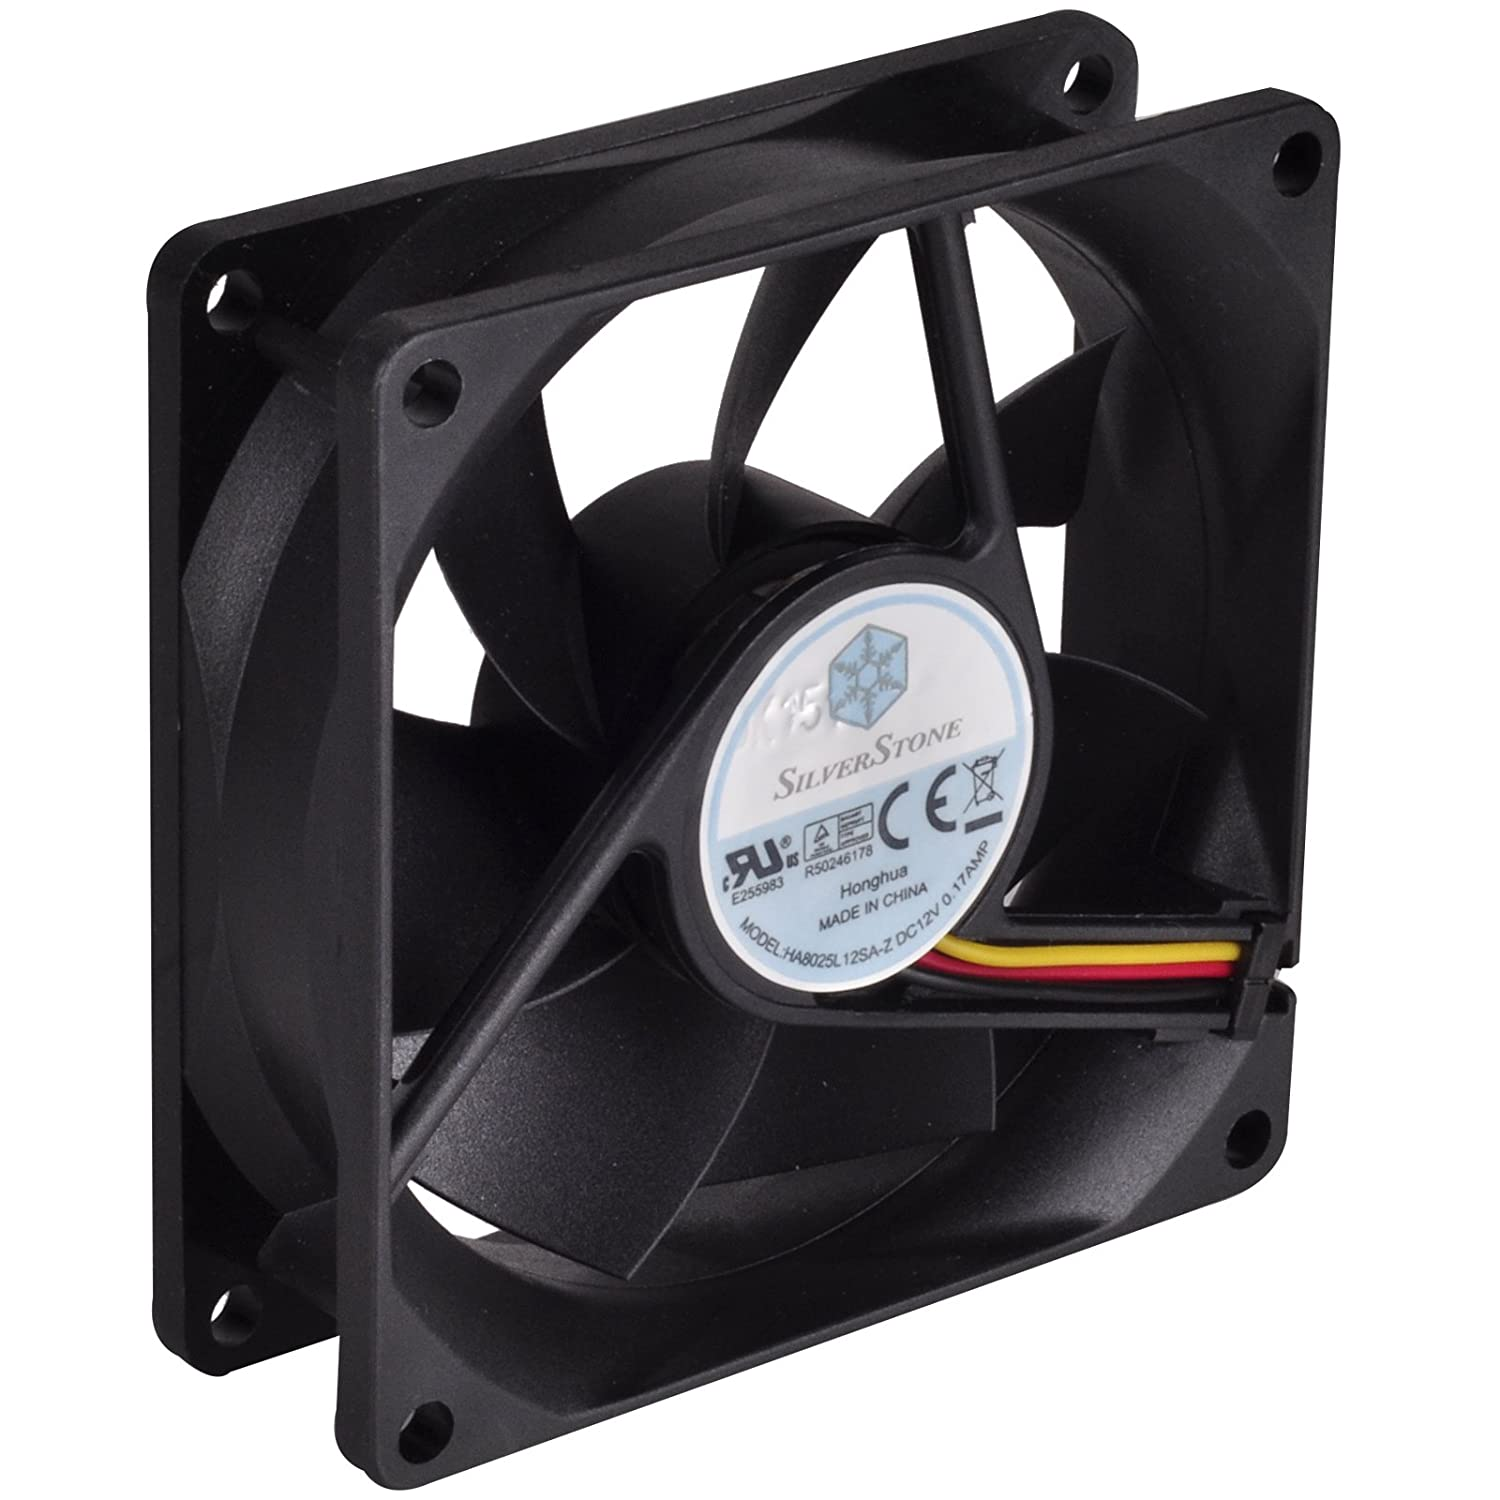 9 pale High Airflow SilverStone SST-FN121-P-GL Low Noise Ventola regolabile serie FN 120mm 4x LED Verdi